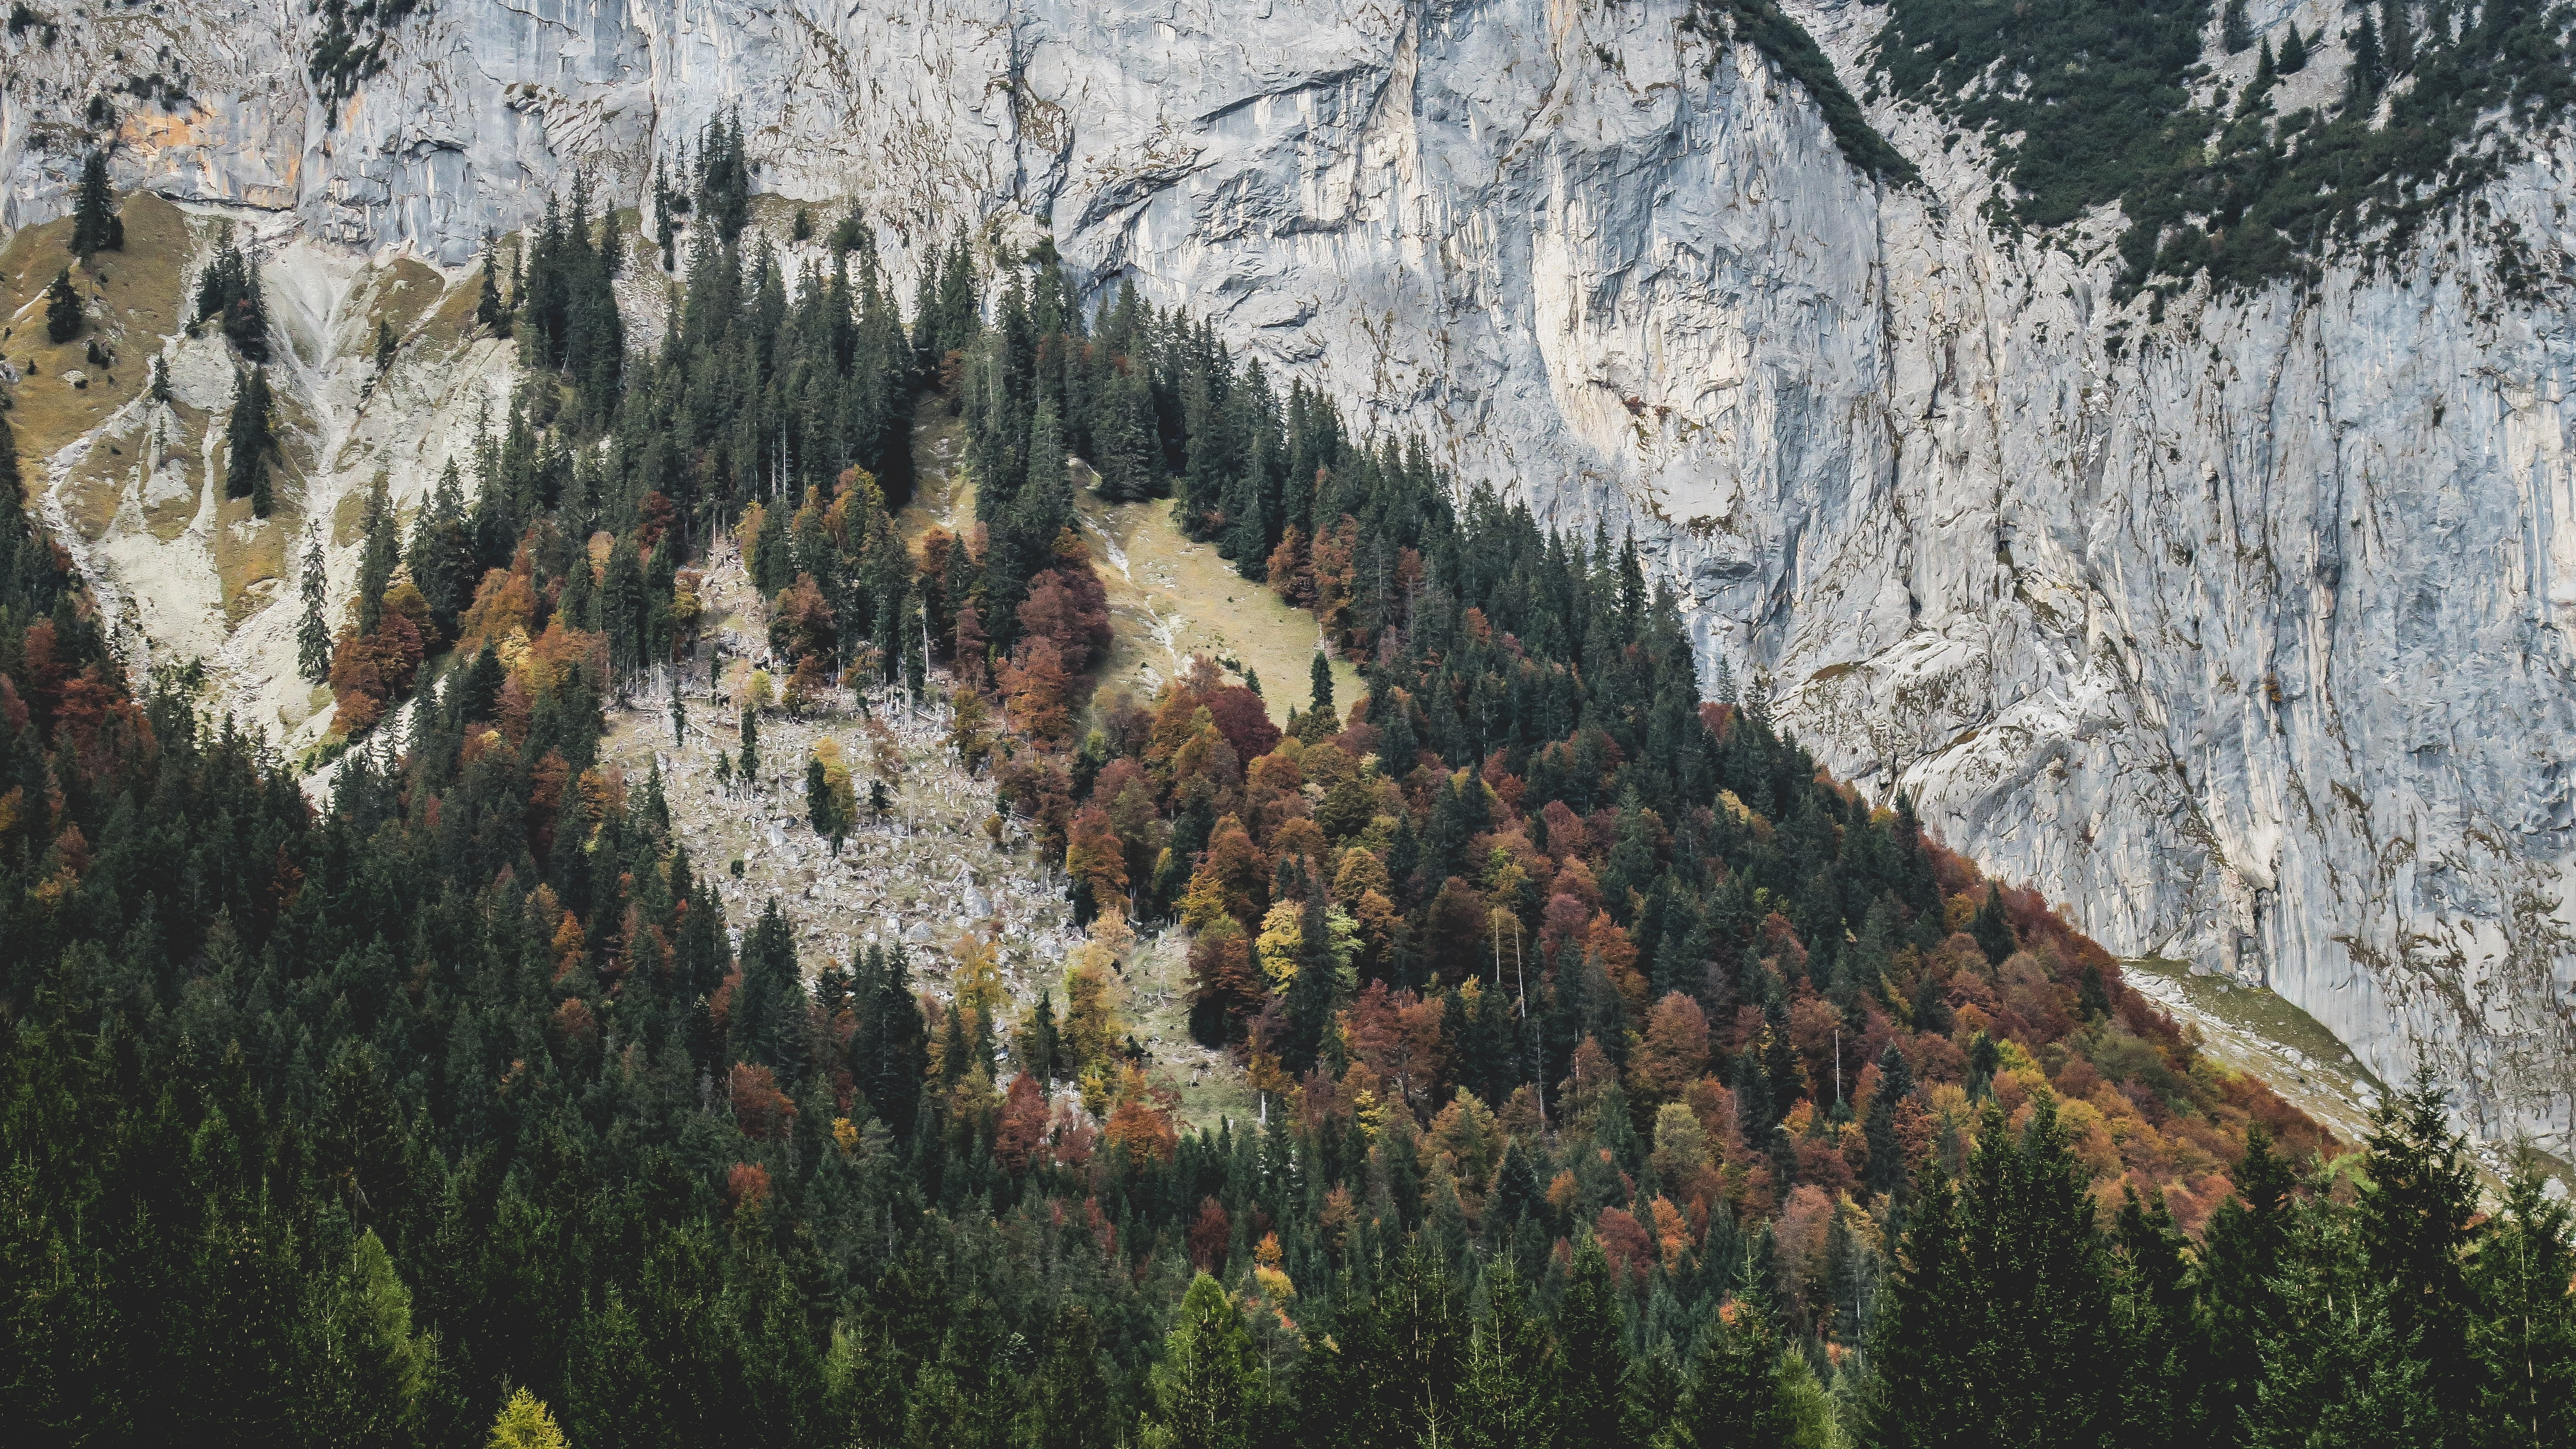 Trees in autumn colors covering a slope by a rock face in Gasse